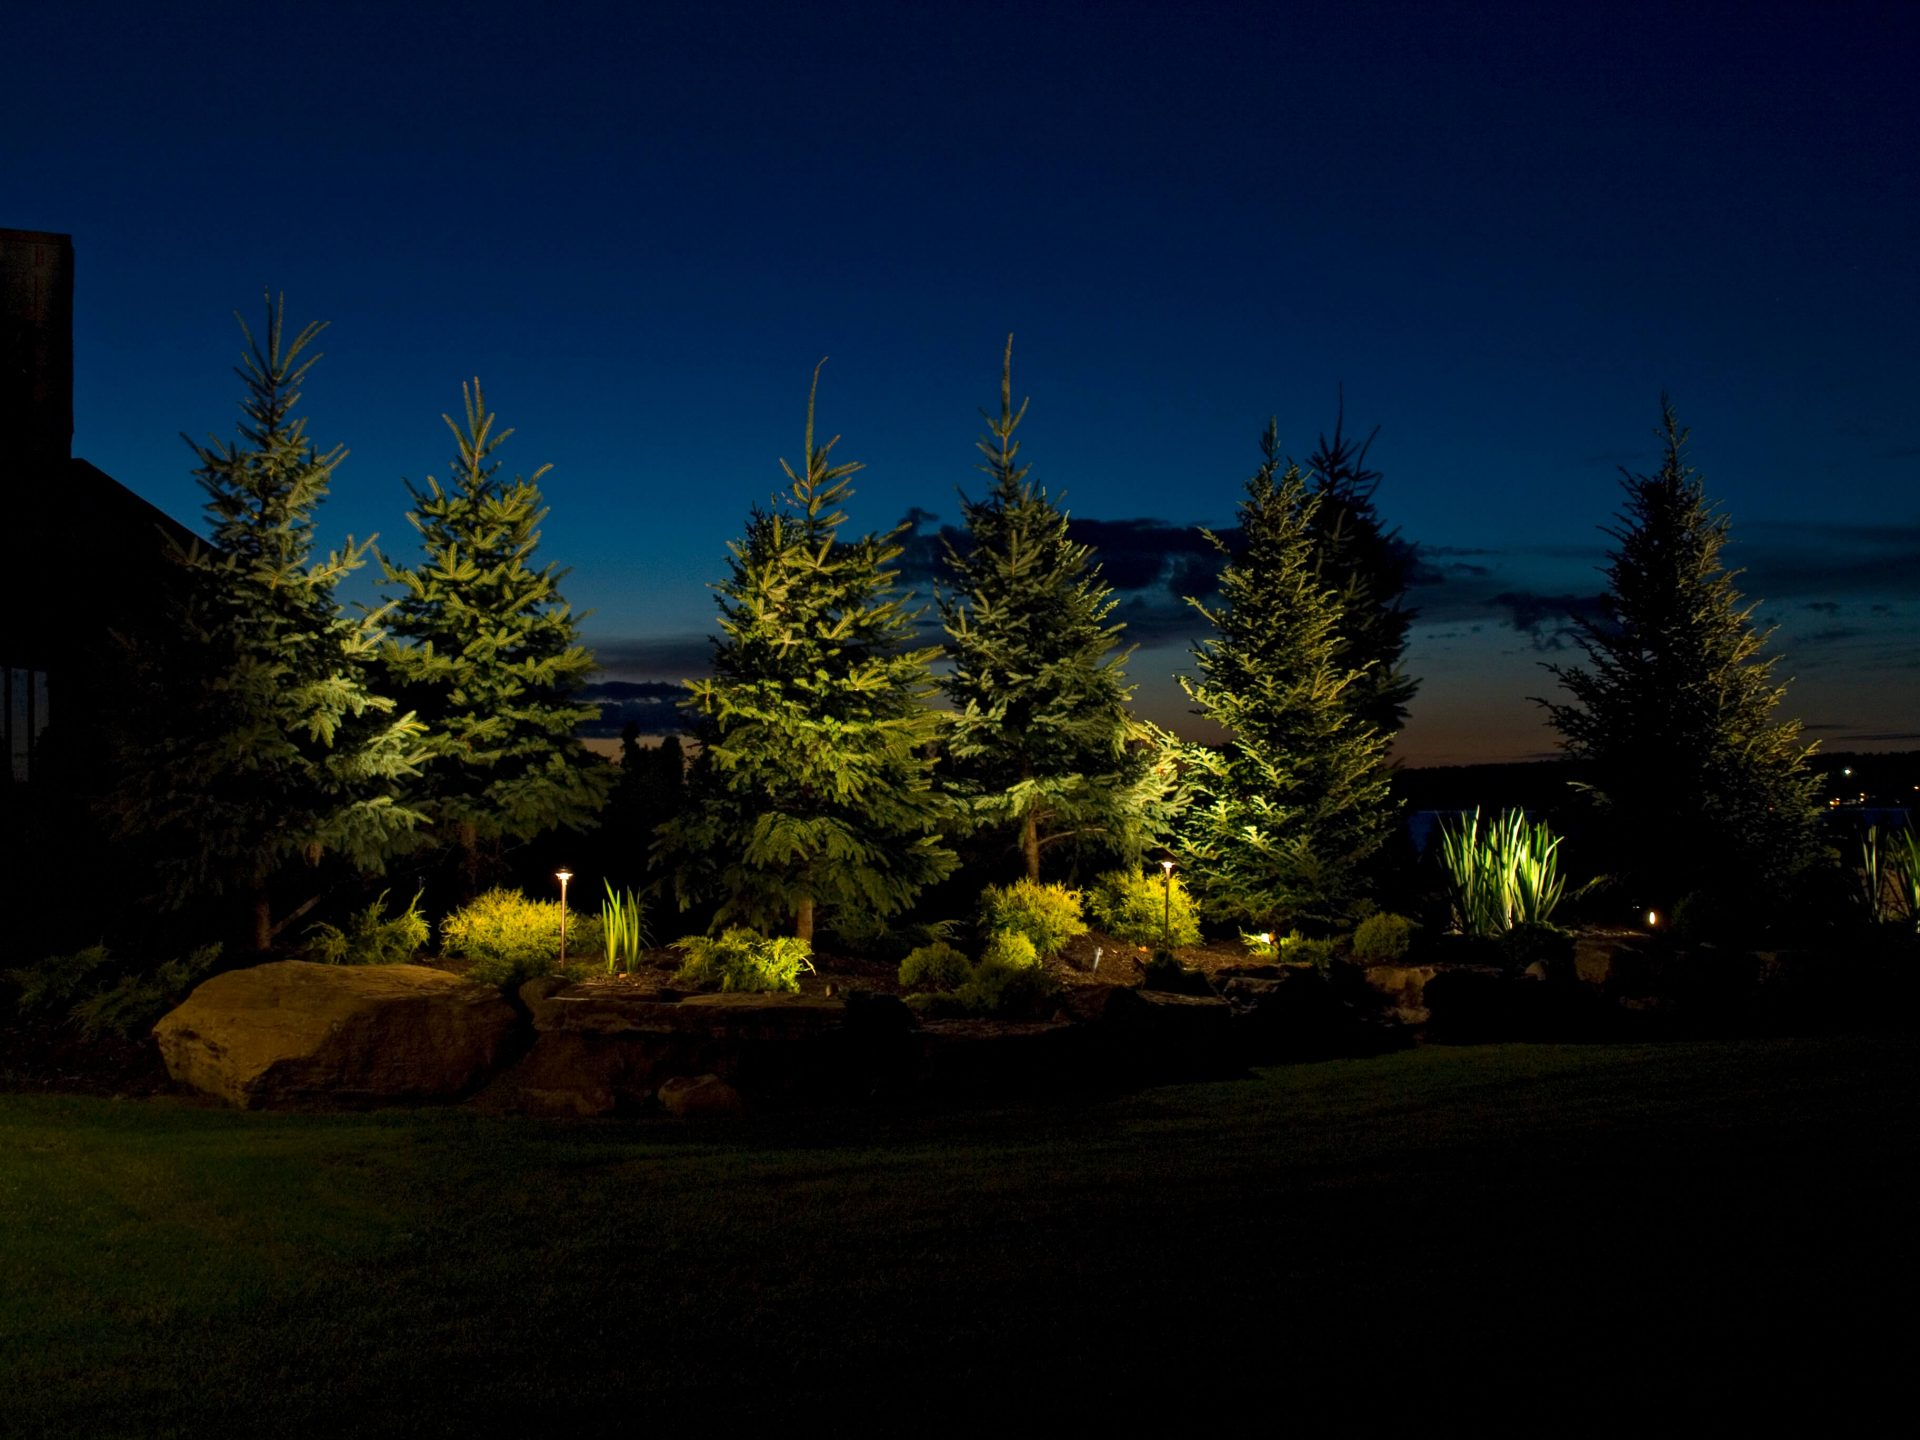 Evening photo of pine trees spotlighted by flood lights